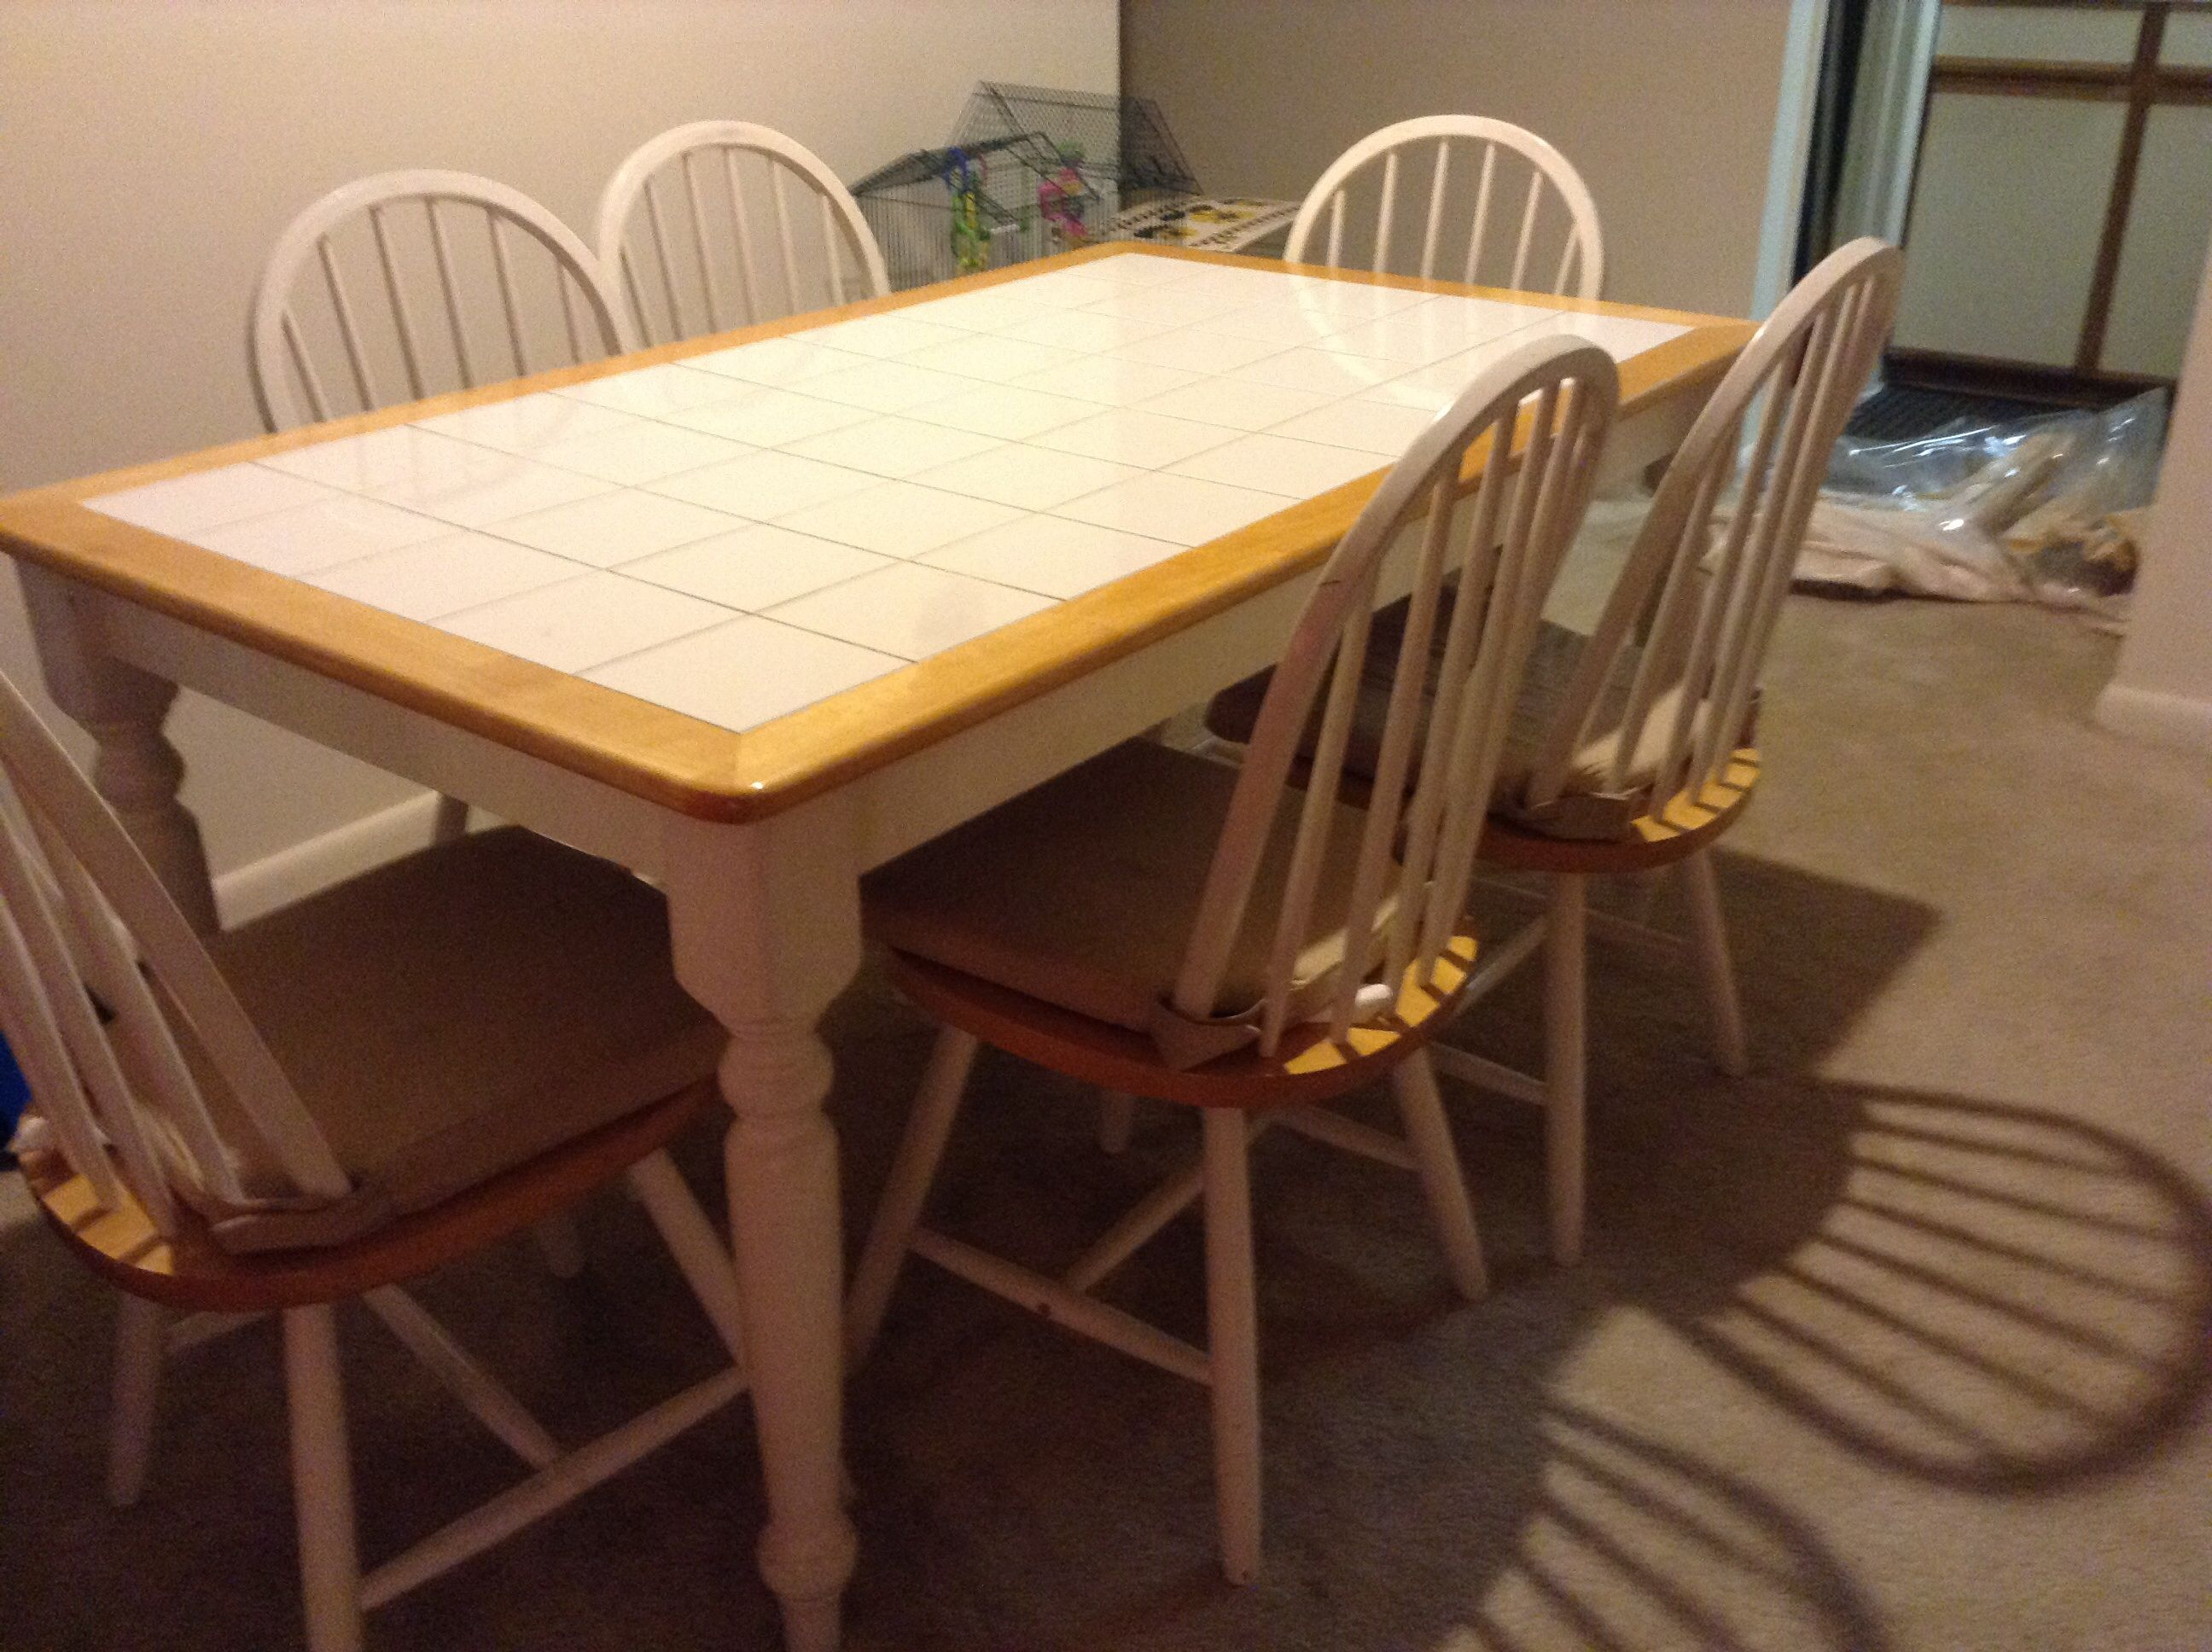 Dining Table With 6 Chairs In Marjan S Garage Sale In Germantown